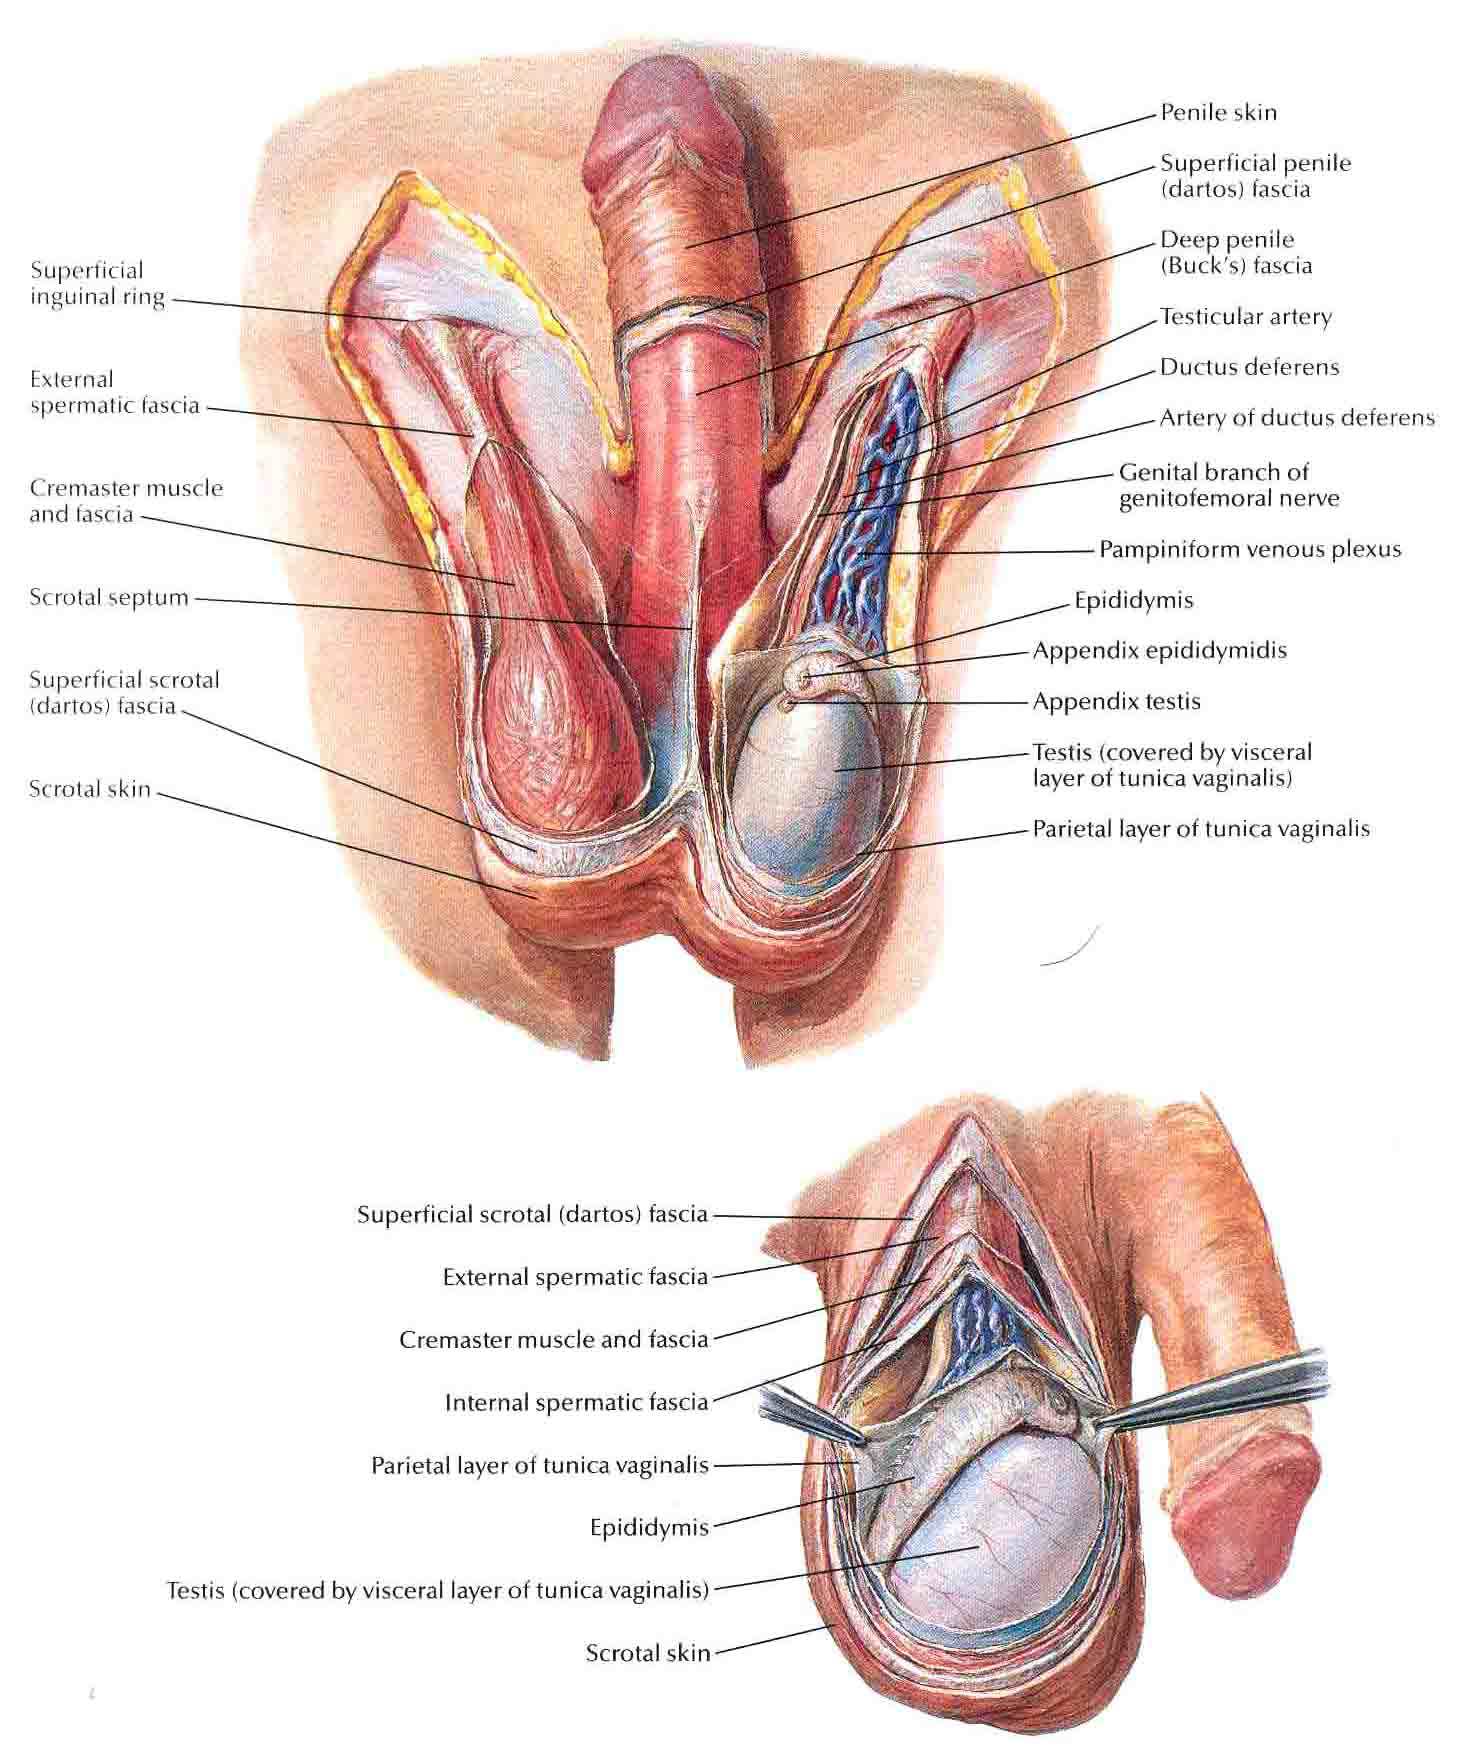 Scrotum Anatomy http://bedahunmuh.wordpress.com/2010/05/13/scrotum-and-contents/